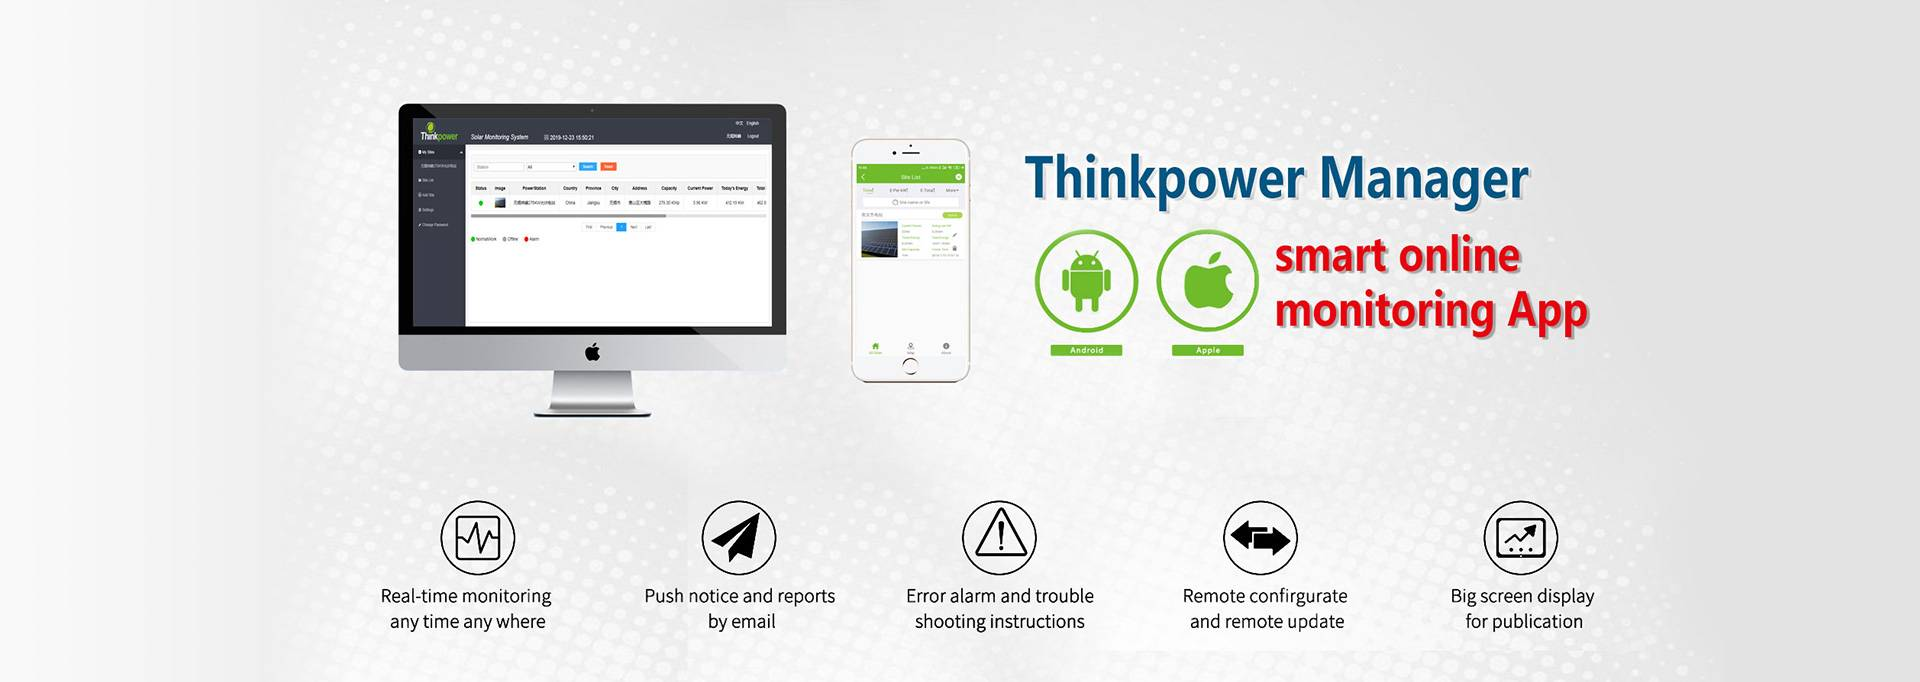 """Thinkpower Manager"""